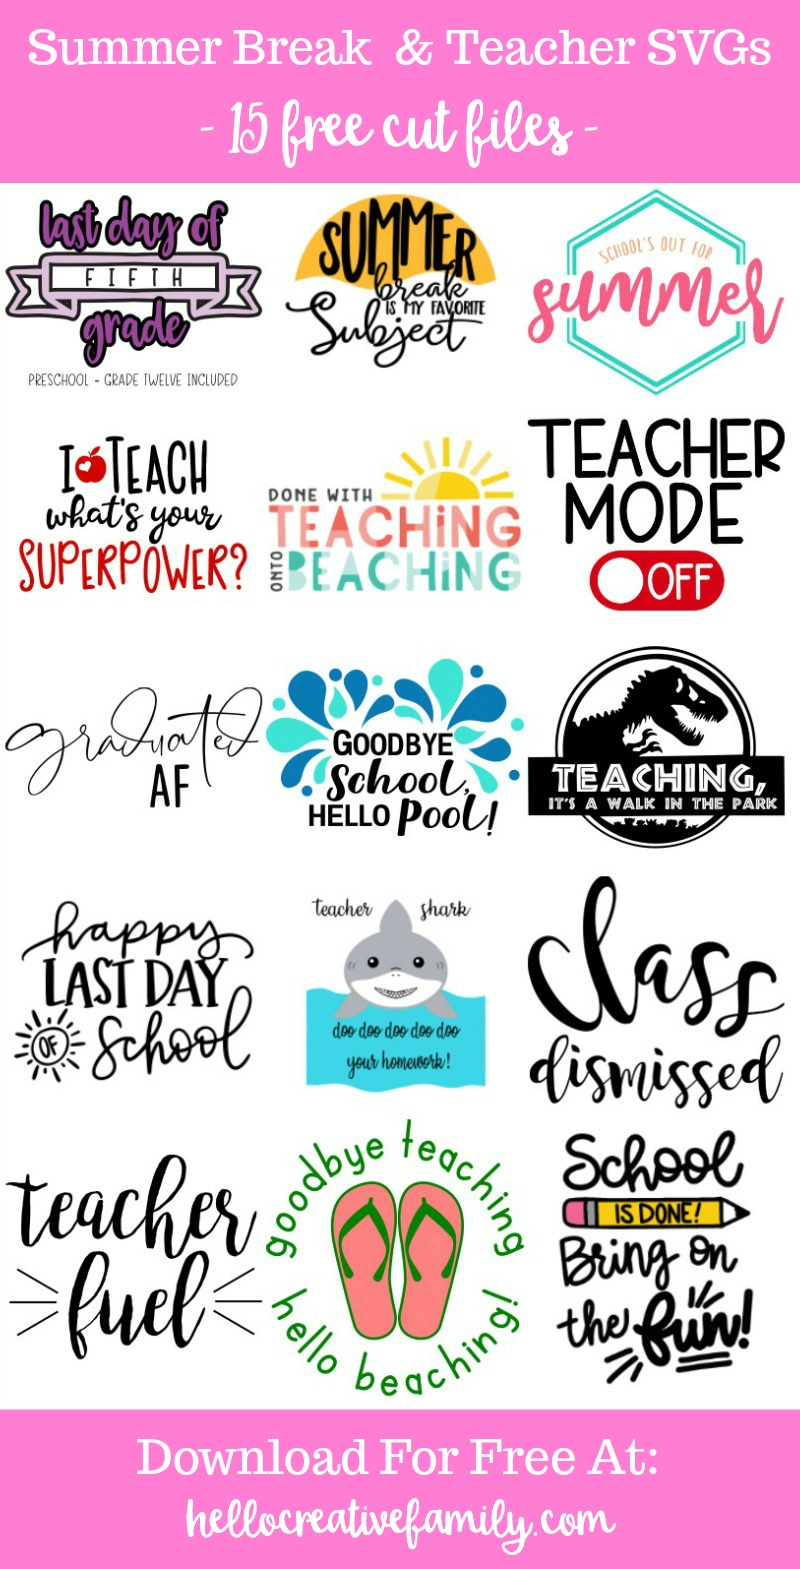 "We're sharing 15 Free End of the School Year/ Summer Break/ Teacher SVG Cut Files including our very own ""Teacher Shark"" cut file. So pull out those Cricuts and Silhouettes and craft up an easy project! We have you covered for amazing handmade teacher gifts and graduation gifts! #Cricut #Silhouette #TeacherGift #Teacher #CutFile #FreeSVG #SVG"